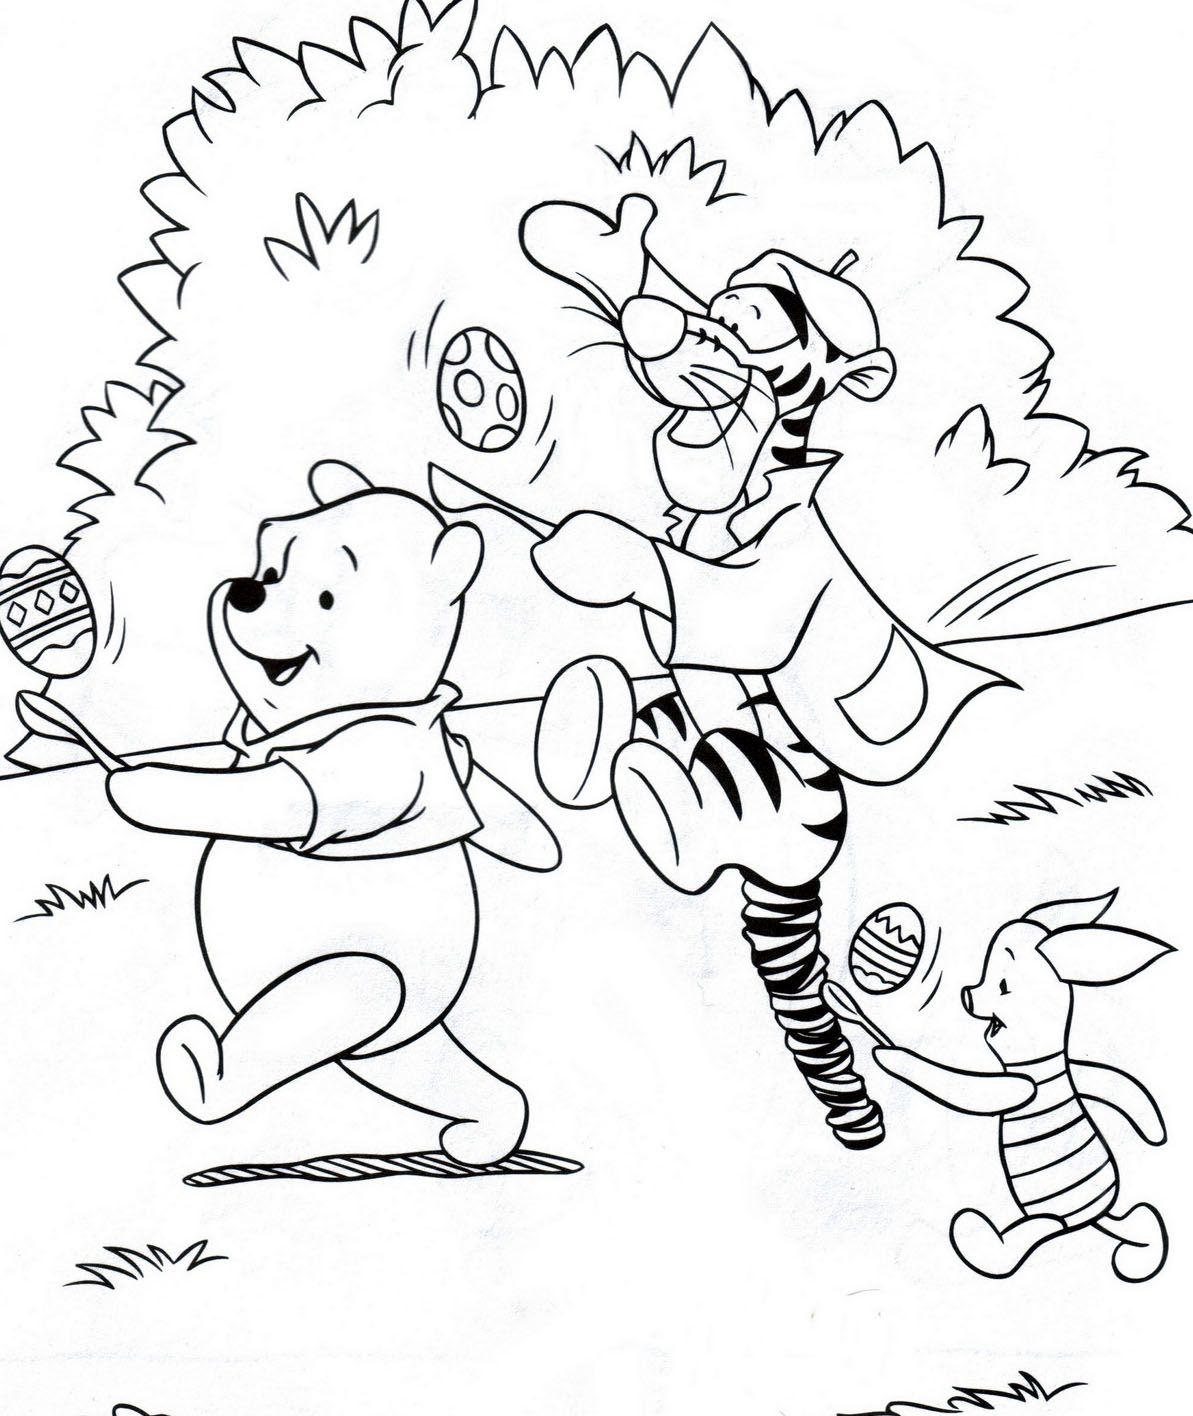 Two Easter colouring pictures of Disney's Winnie the Pooh